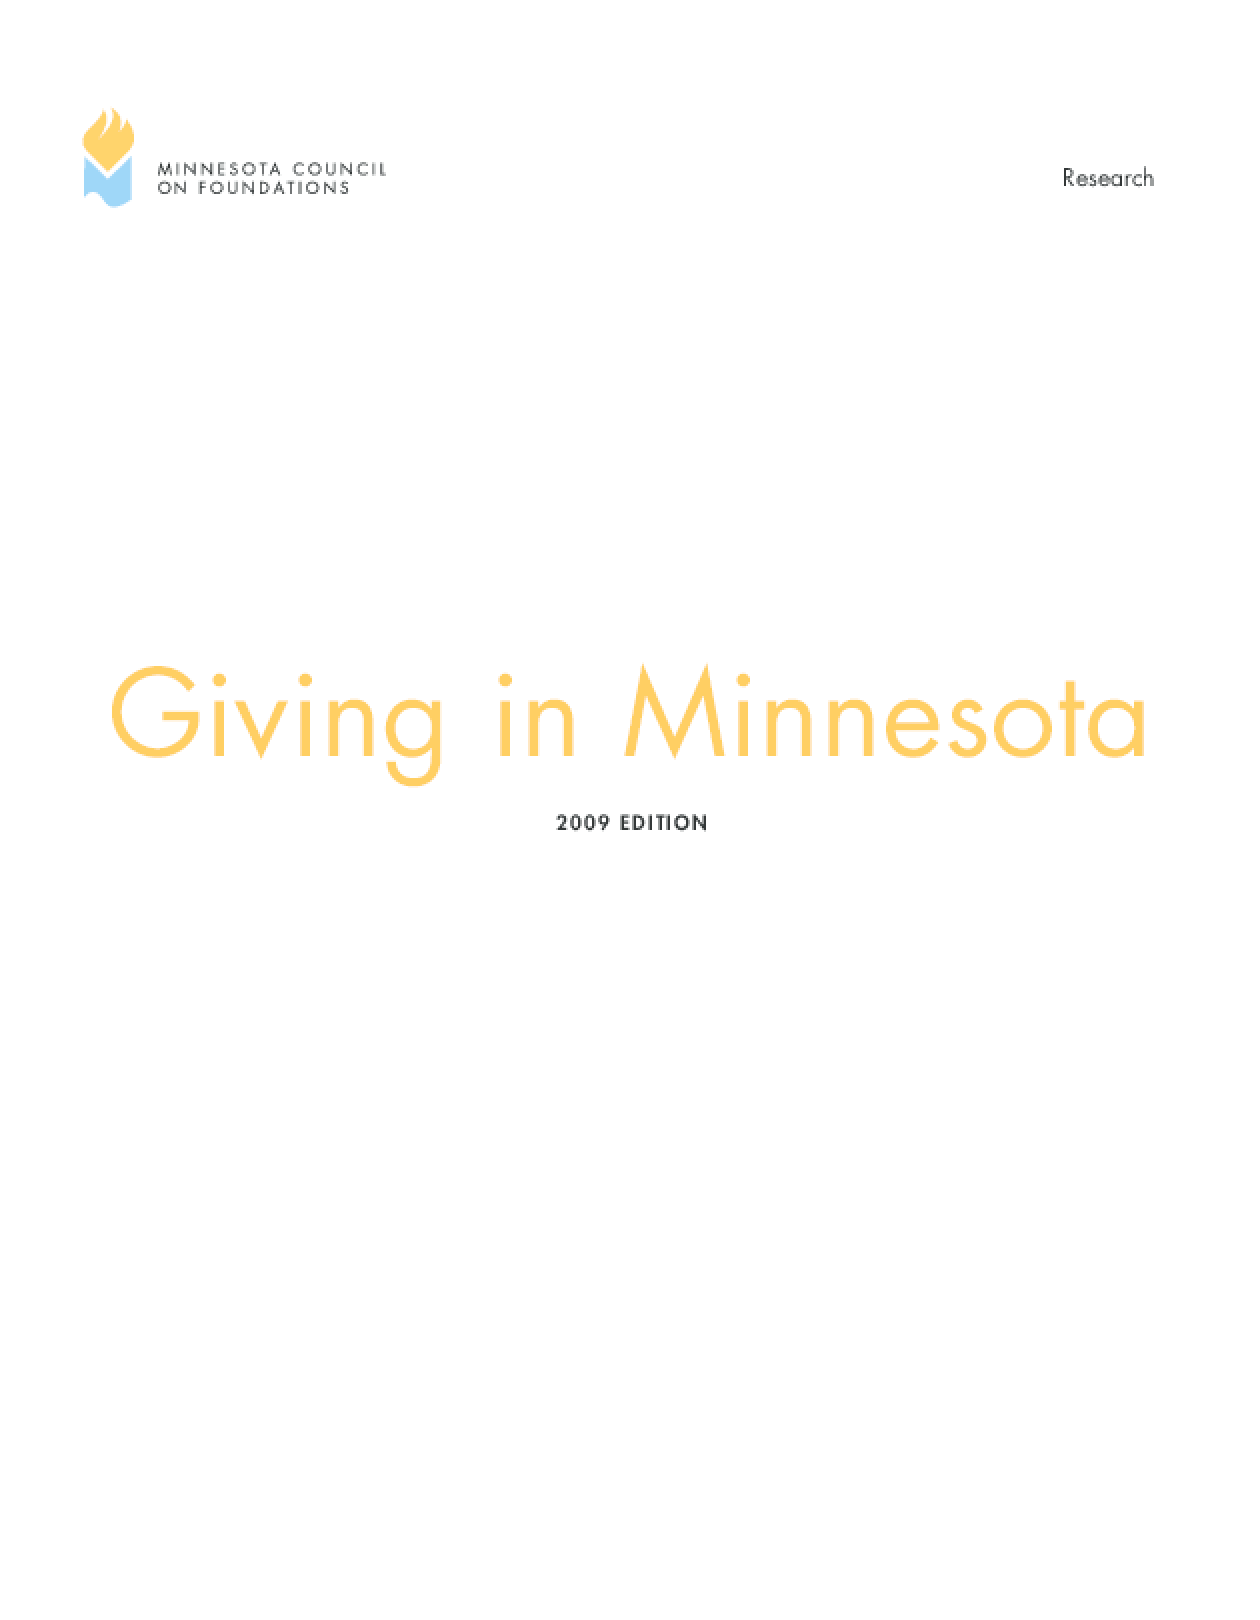 Giving in Minnesota, 2009 Edition